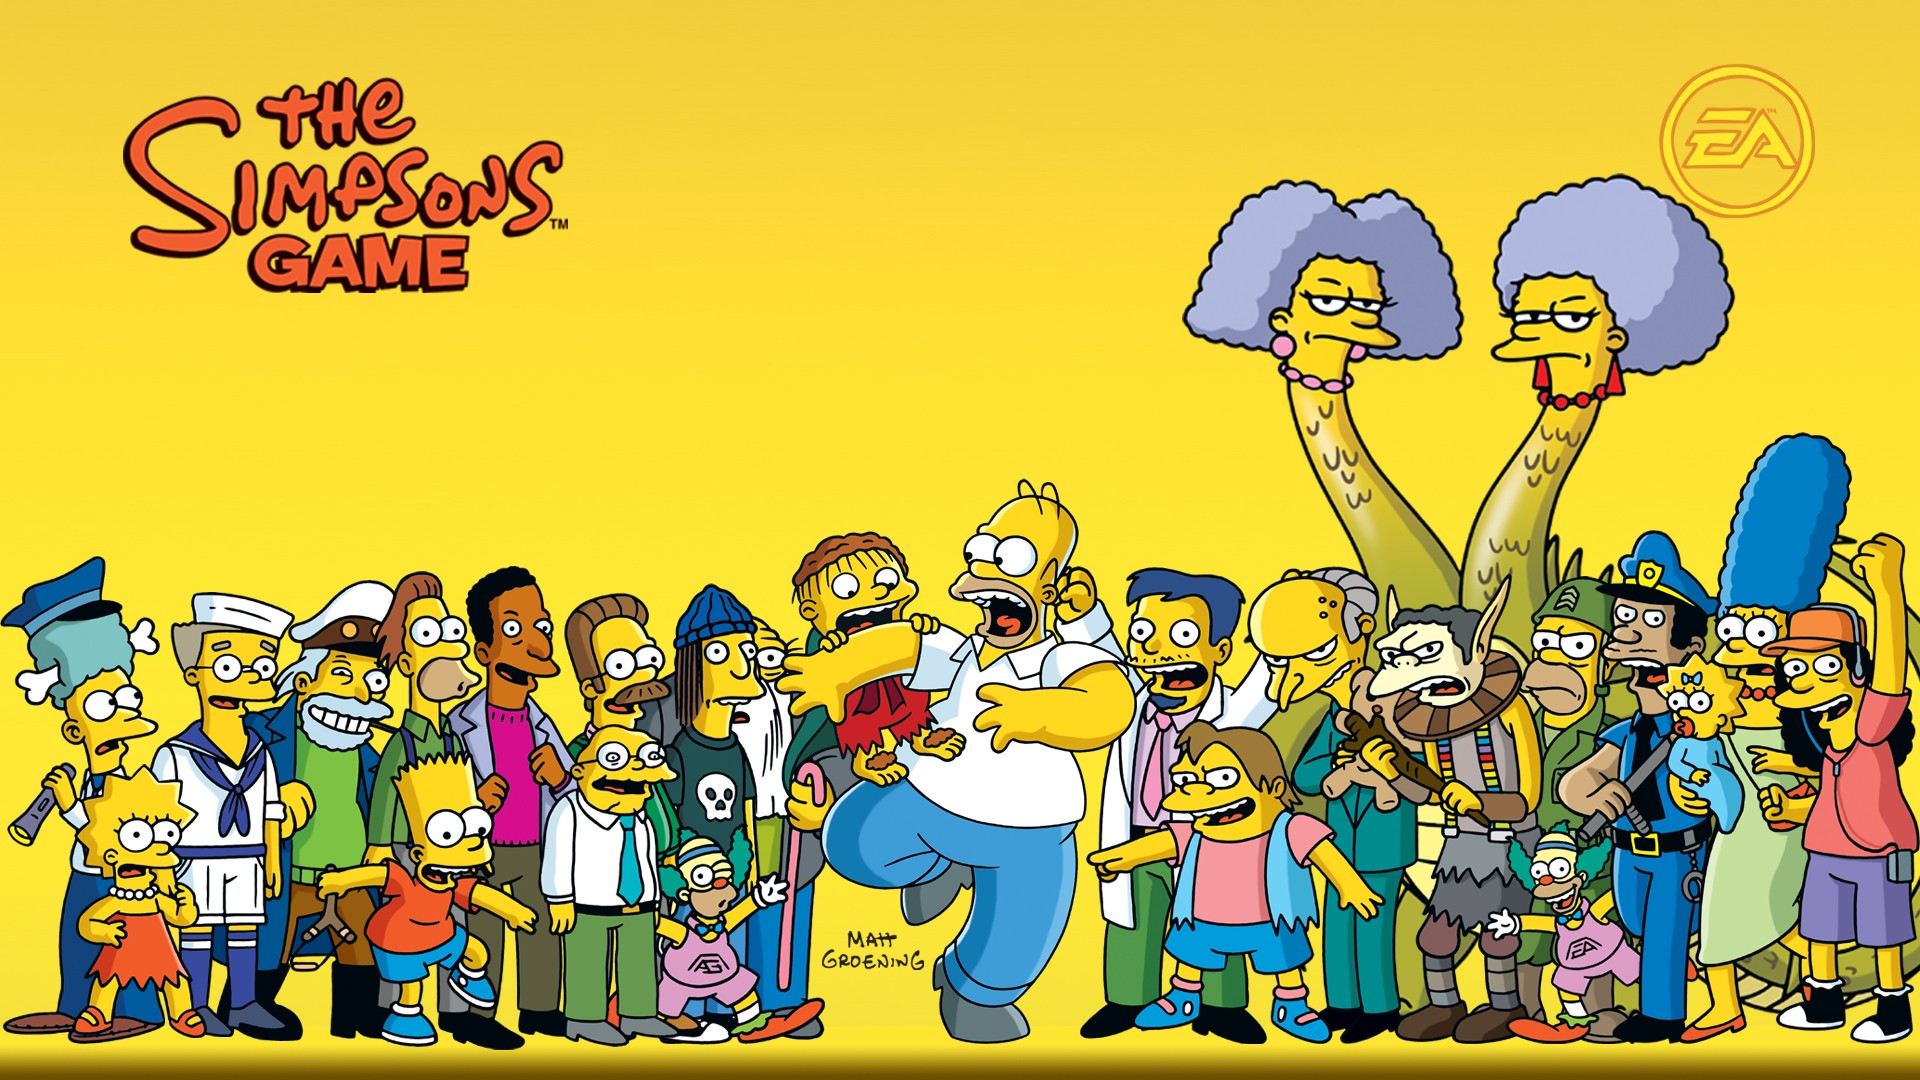 General 1920x1080 The Simpsons Homer Simpson Montgomery Burns Sideshow Bob Lisa Simpson Bart Simpson Moe Sislag Maggie Simpson Marge Simpson Selma Bouvier